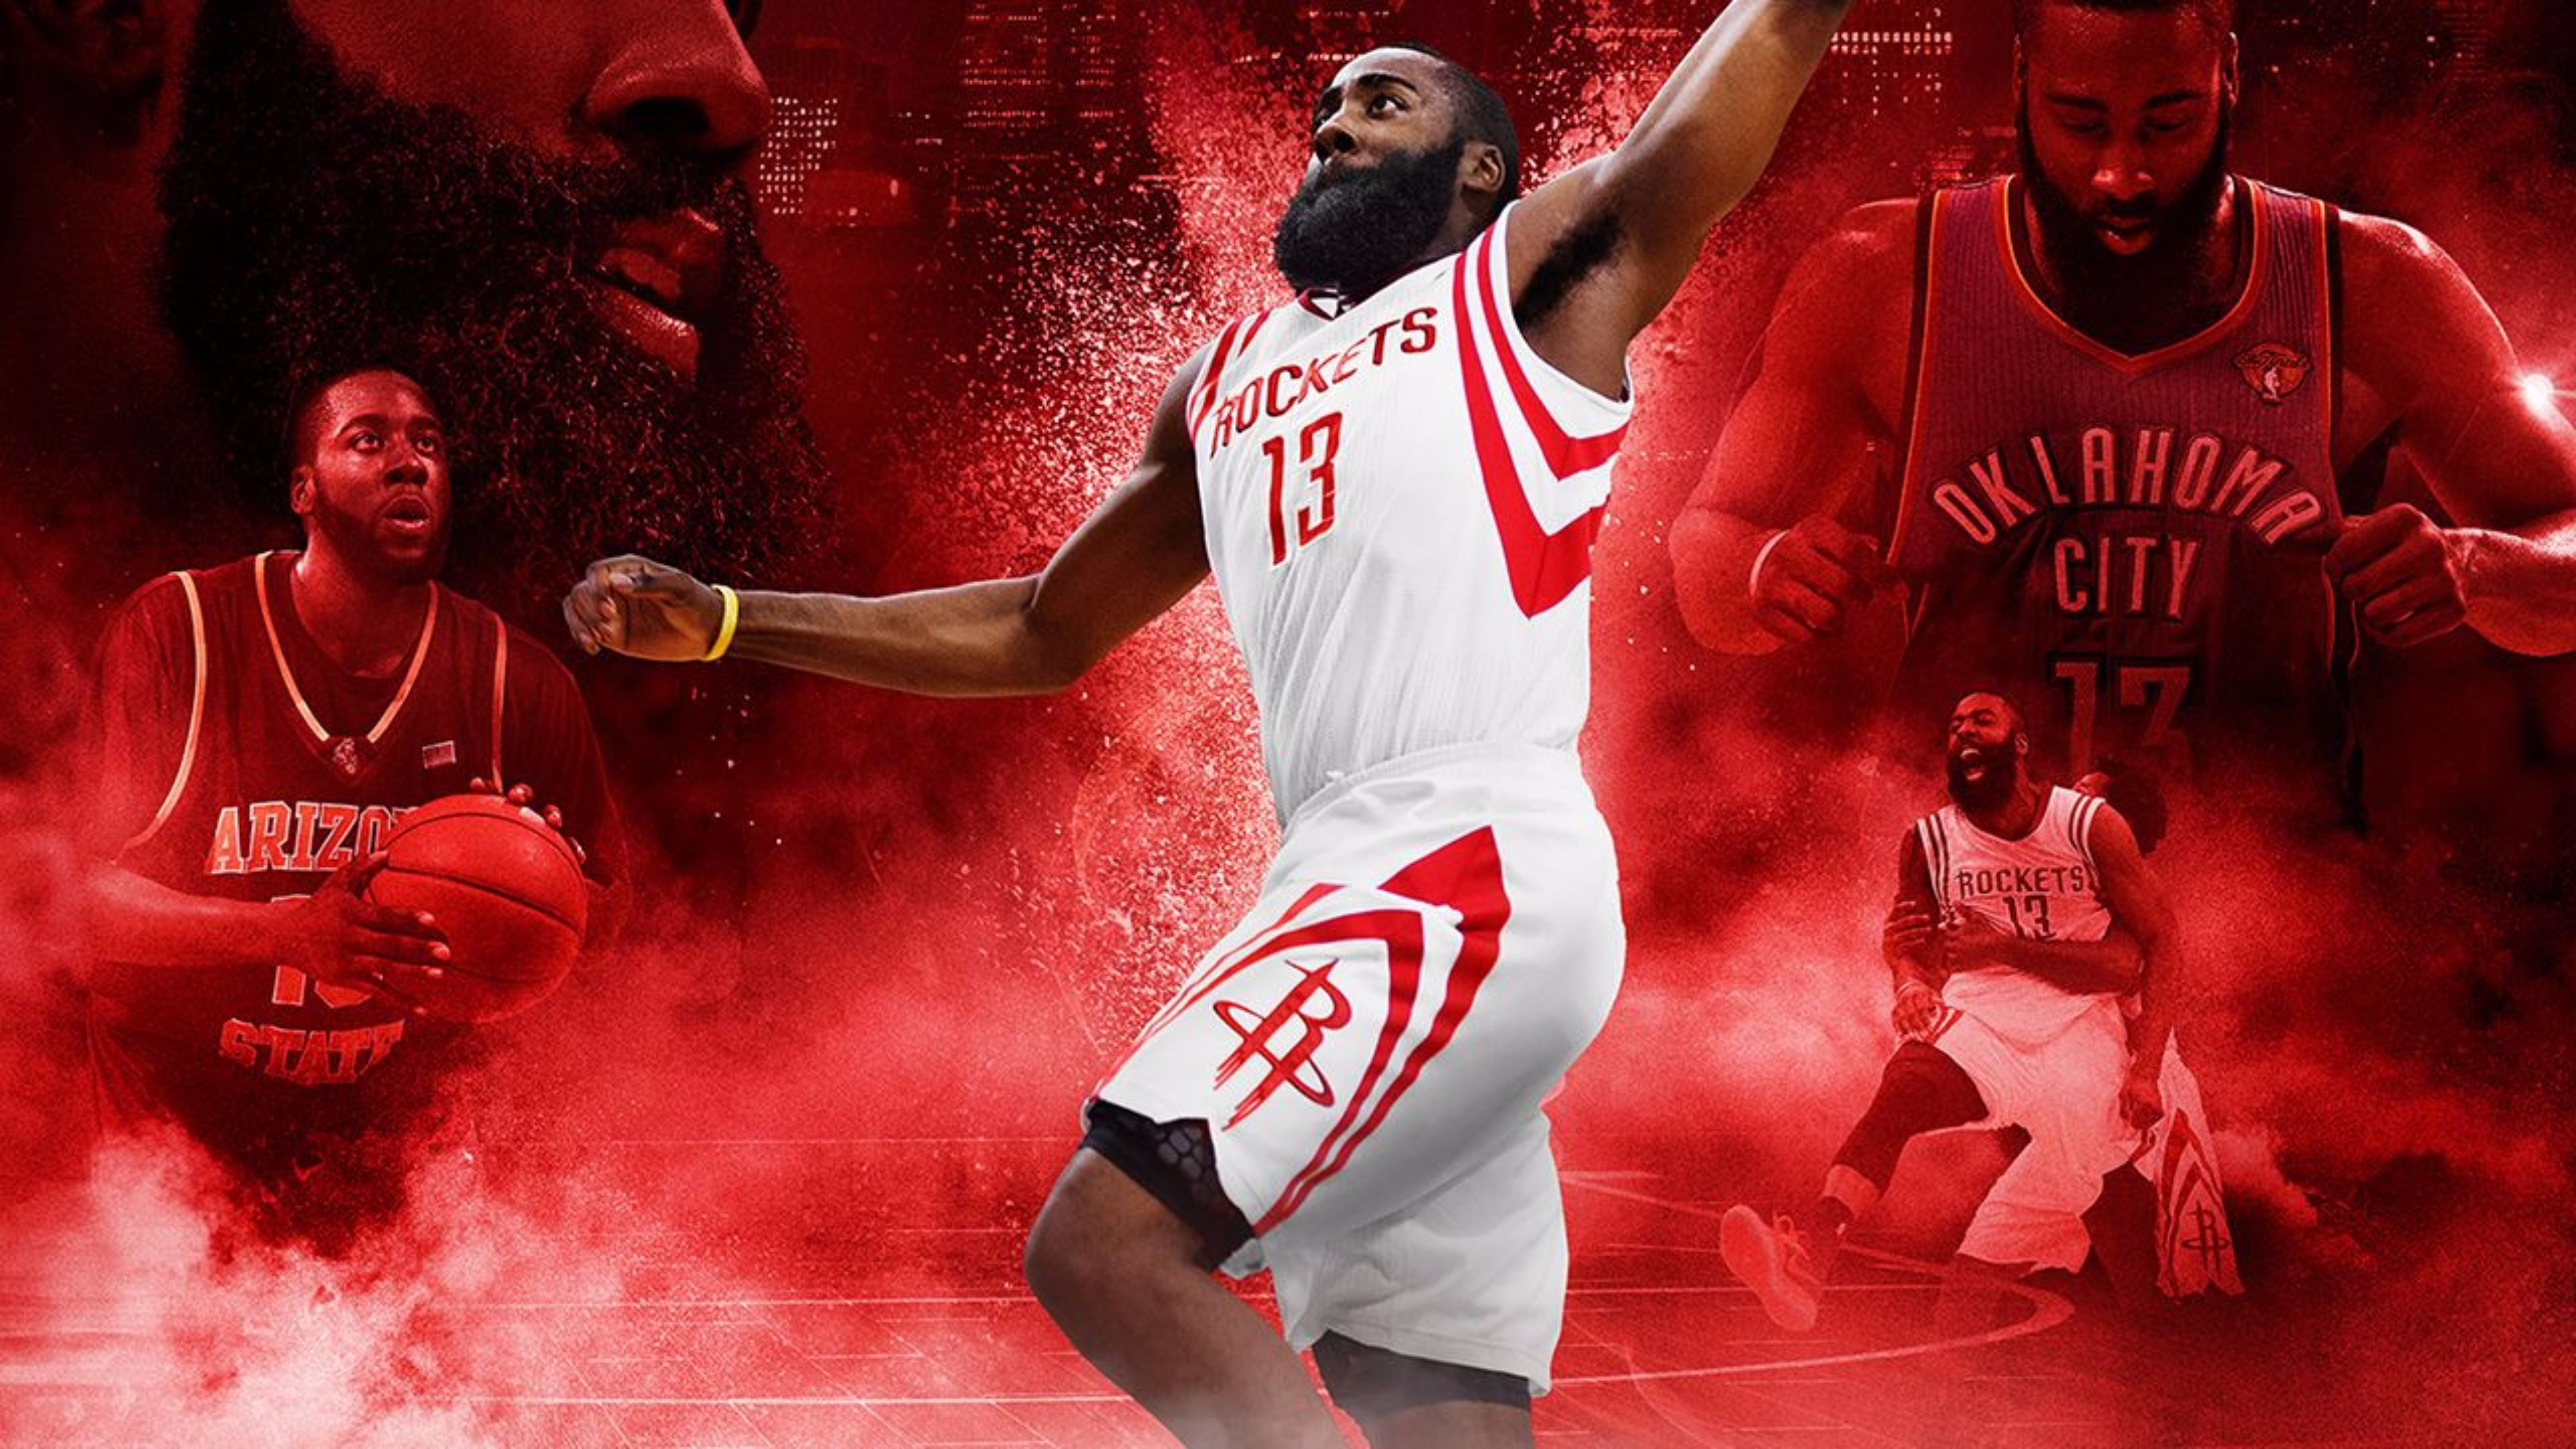 James Harden 4k Ultra HD Wallpaper